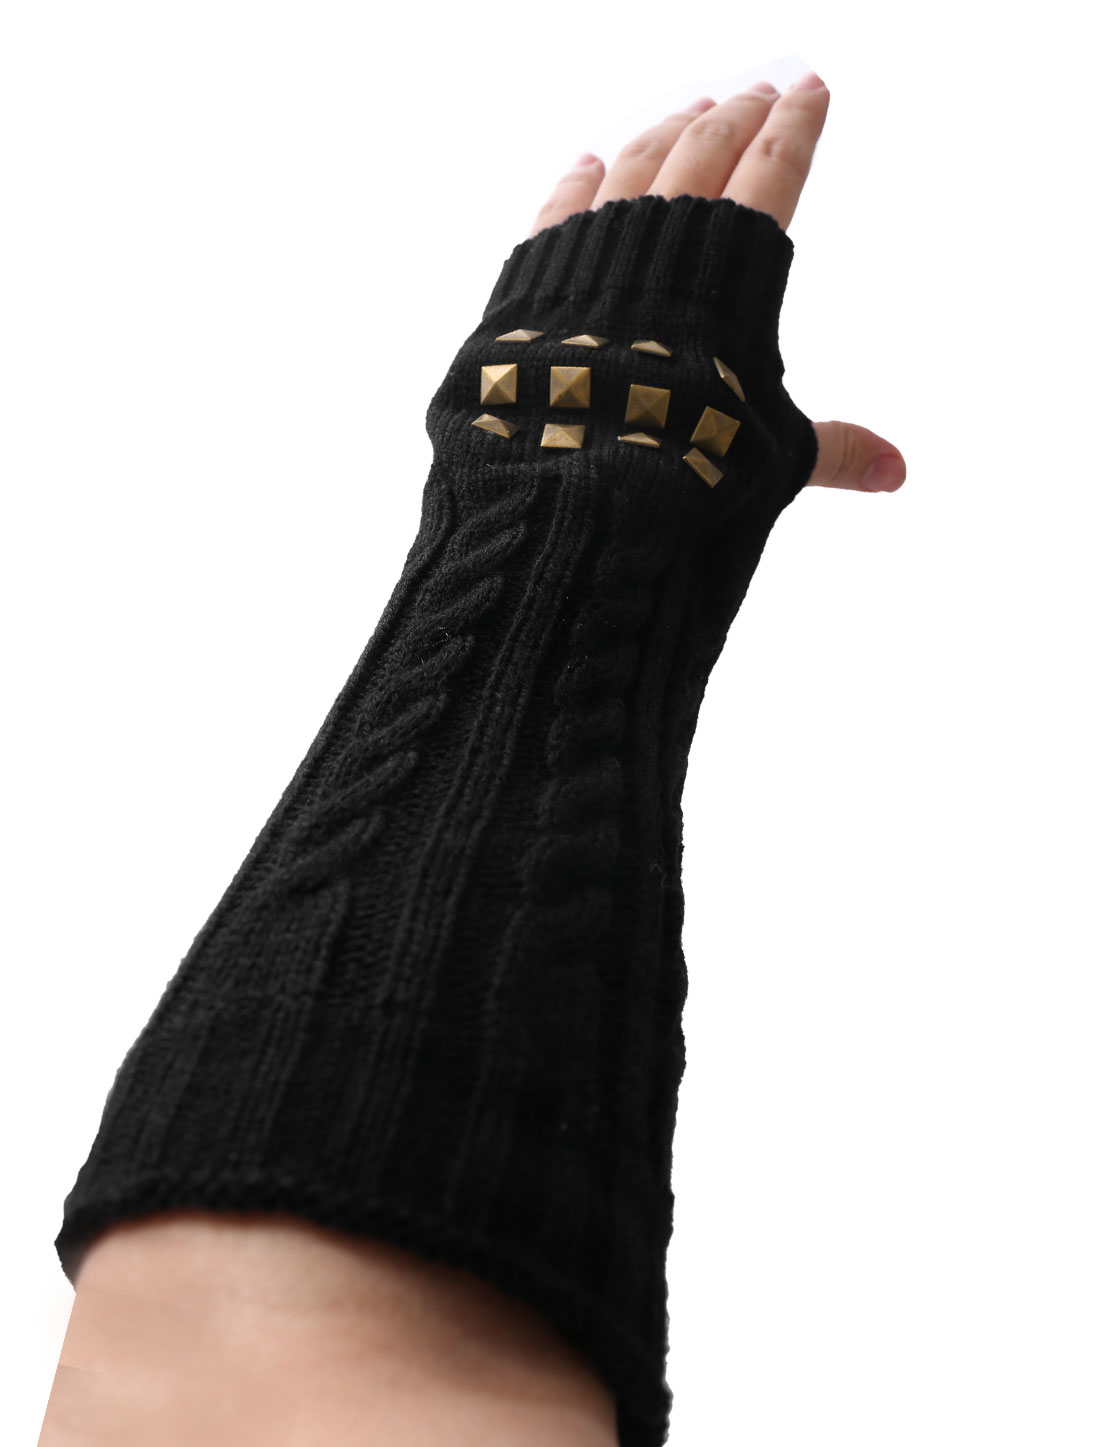 Black Unisex Rivet Decor Knitted Elastic Cuff Long Gloves Pair